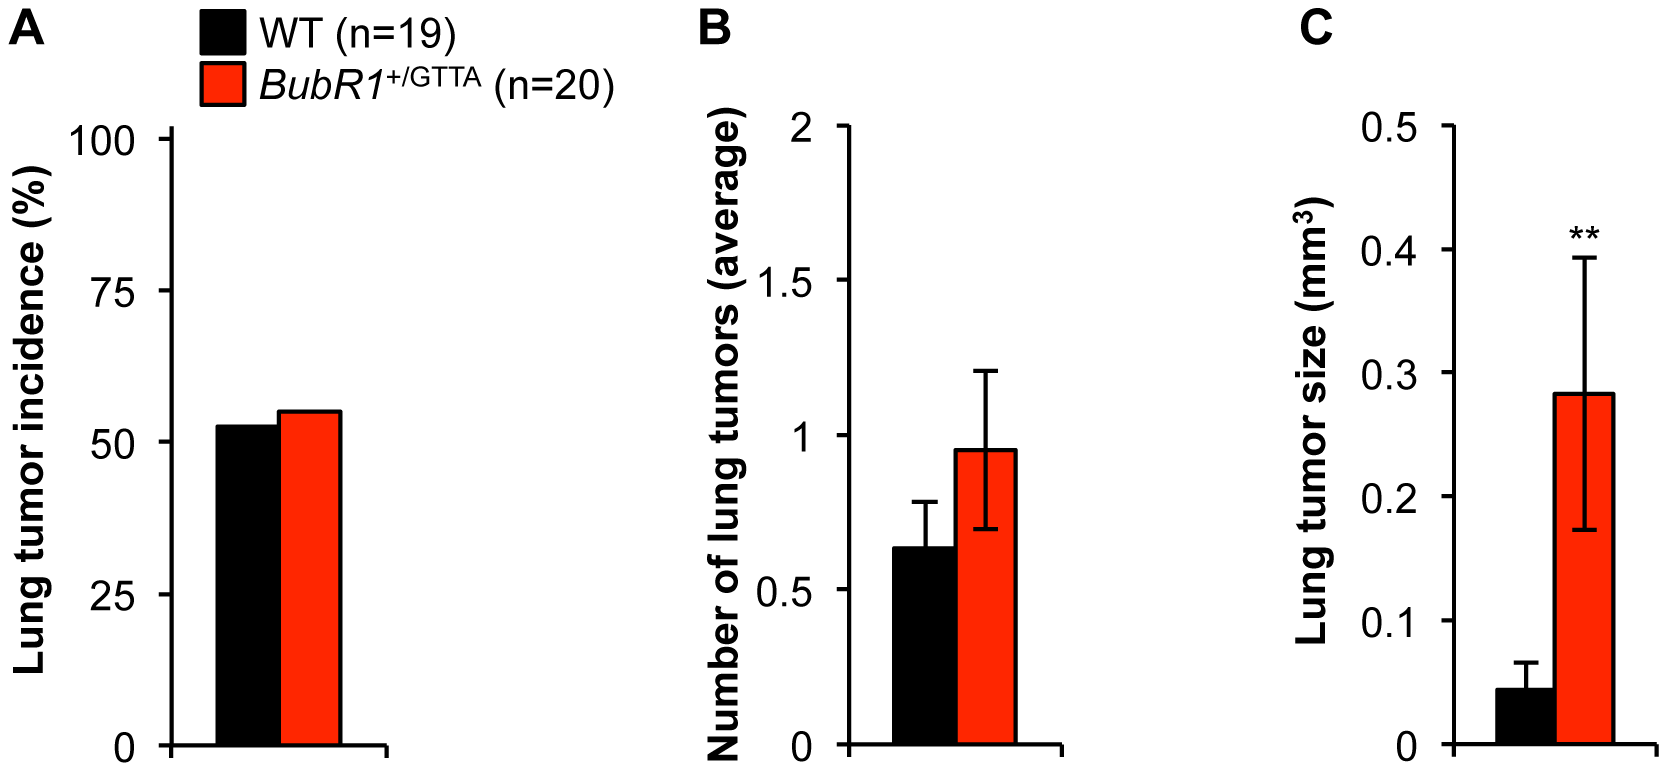 Carcinogen-induced lung tumor size is increased in <i>BubR1</i><sup>+/GTTA</sup> mice.